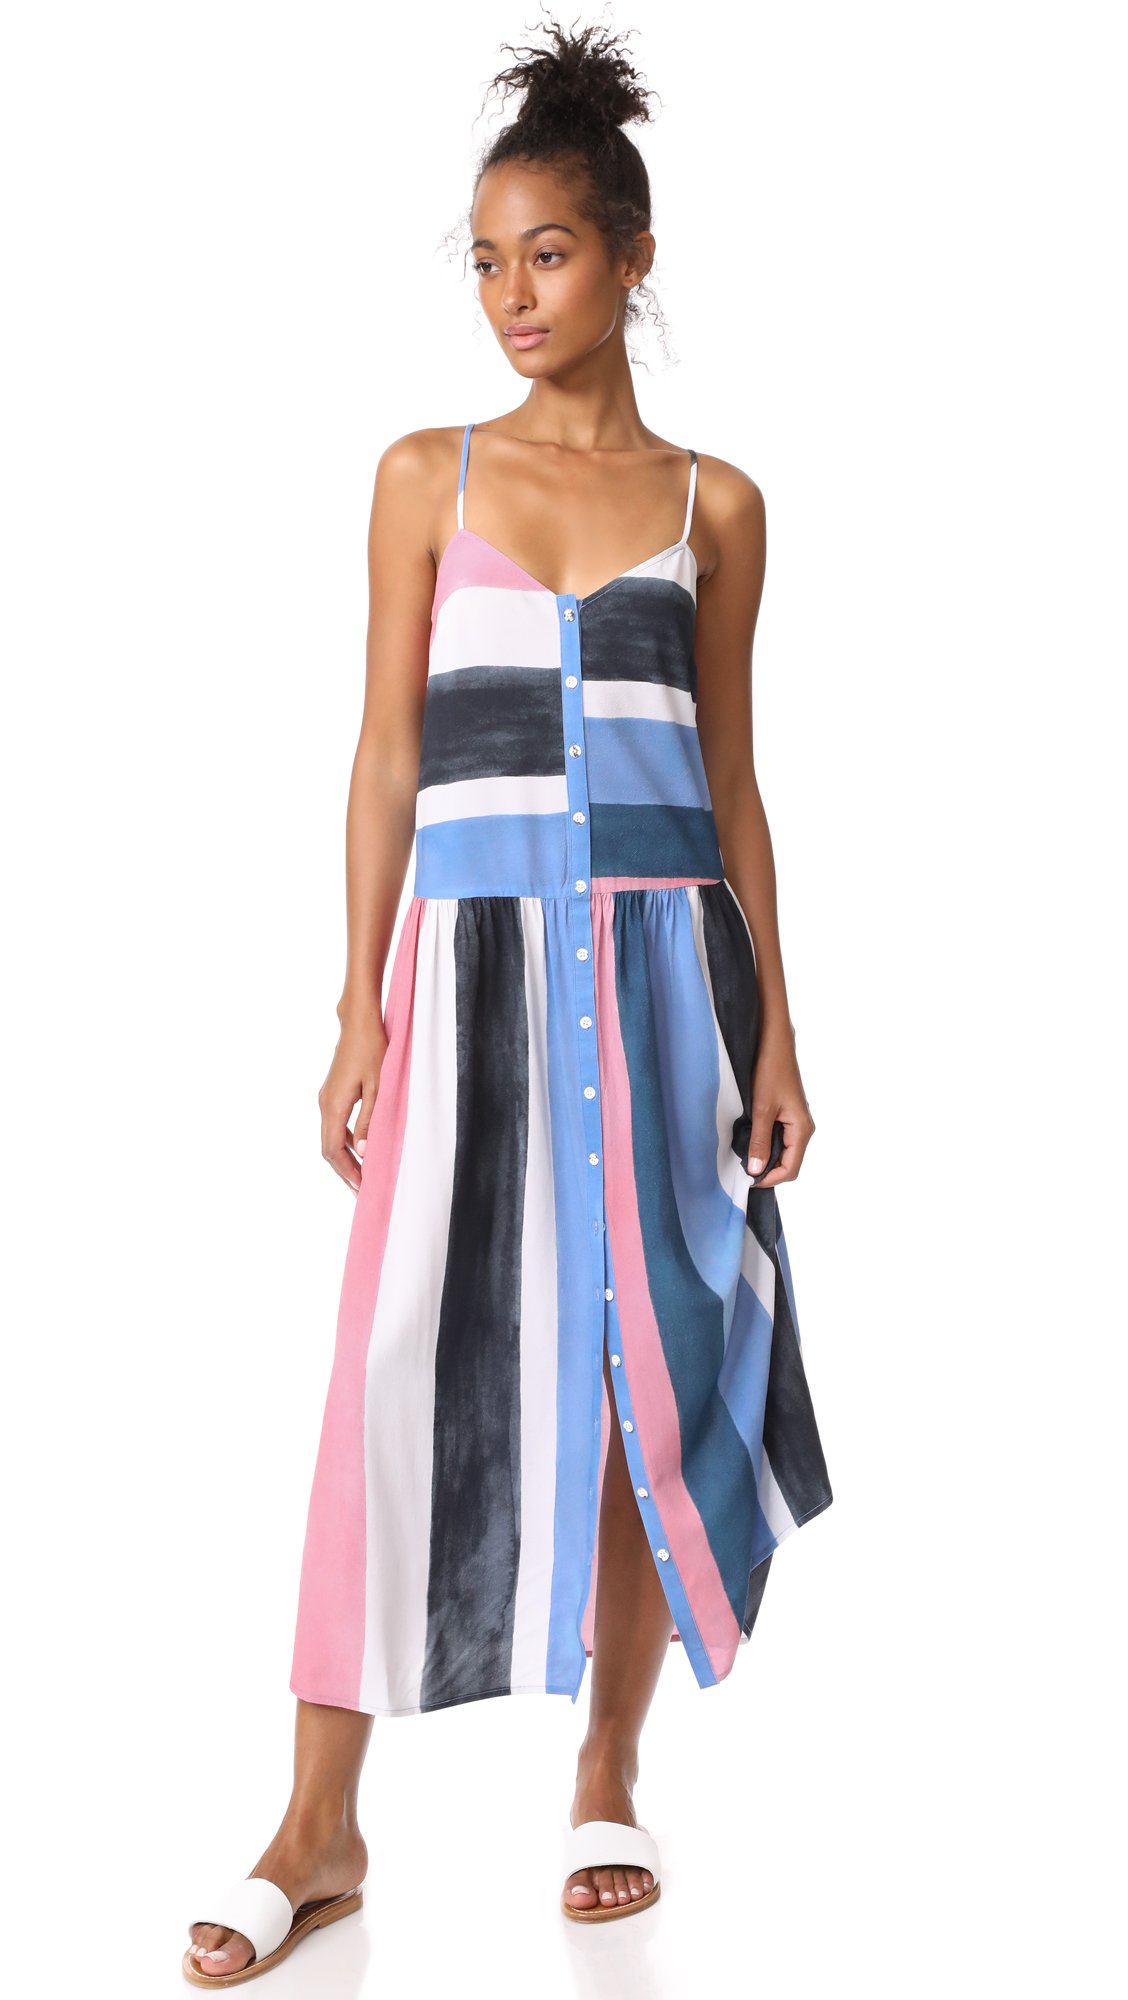 Mara Hoffman Phoebe Dress - Blue Multi